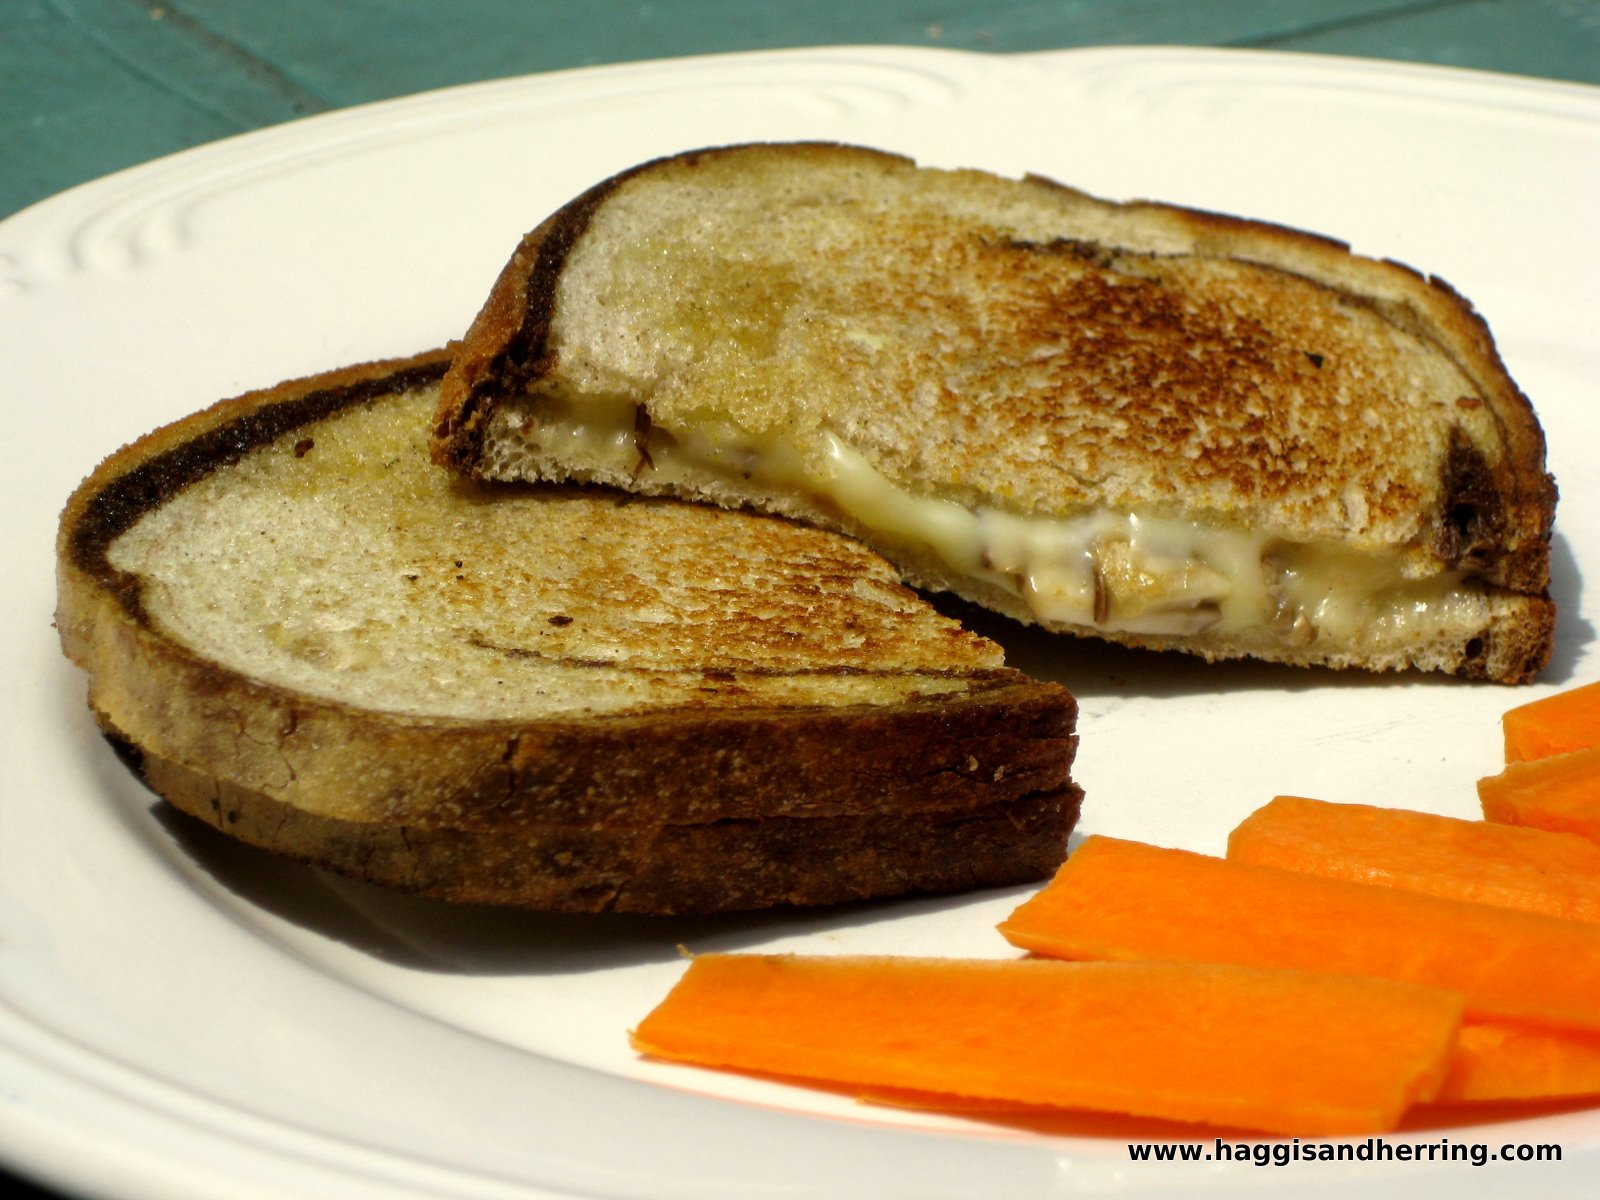 ... grilled cheese sandwiches grown up grilled cheese sandwiches grilled